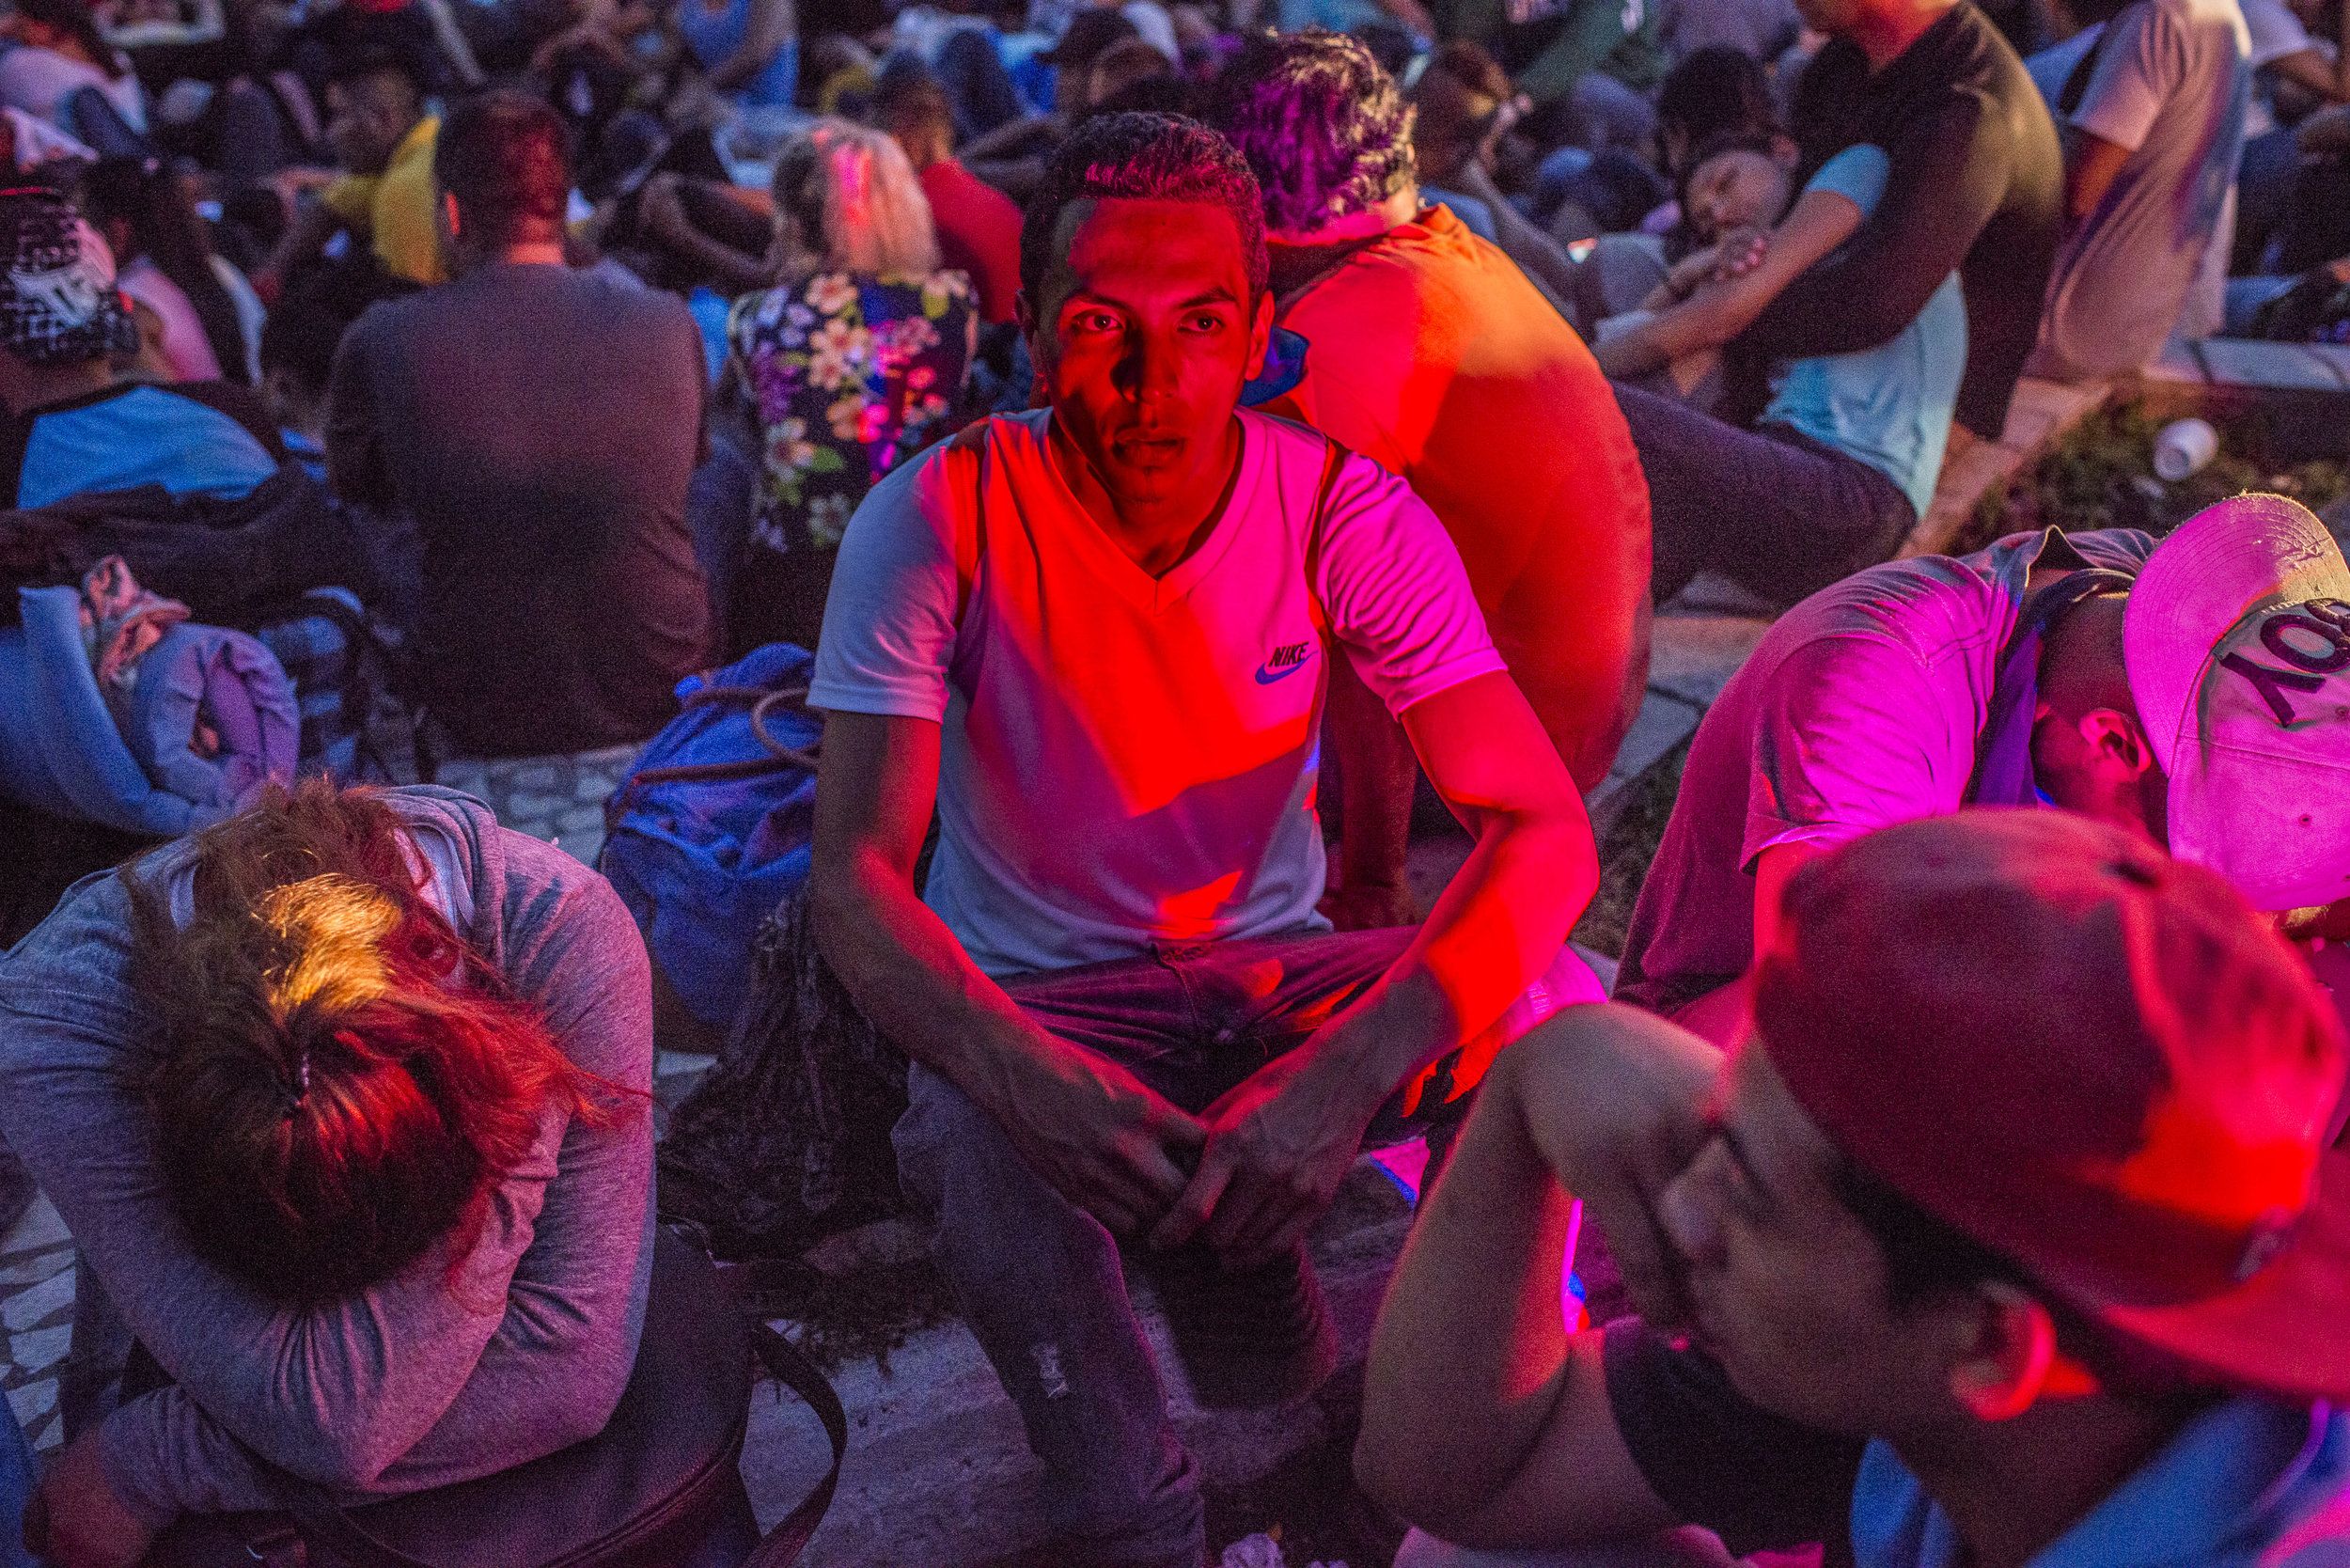 NADÈGE MAZARS  www.nadegemazars.com  |  @nadege_mazars   In the early morning of November 5, 2018, Salvadoran migrants take a break in Viva Mexico, near Tapachula, after having walked for 2 hours. They start to walk at 3:30am and they will have to cover over 40 kilometers during the day before their next step at Huixtla.